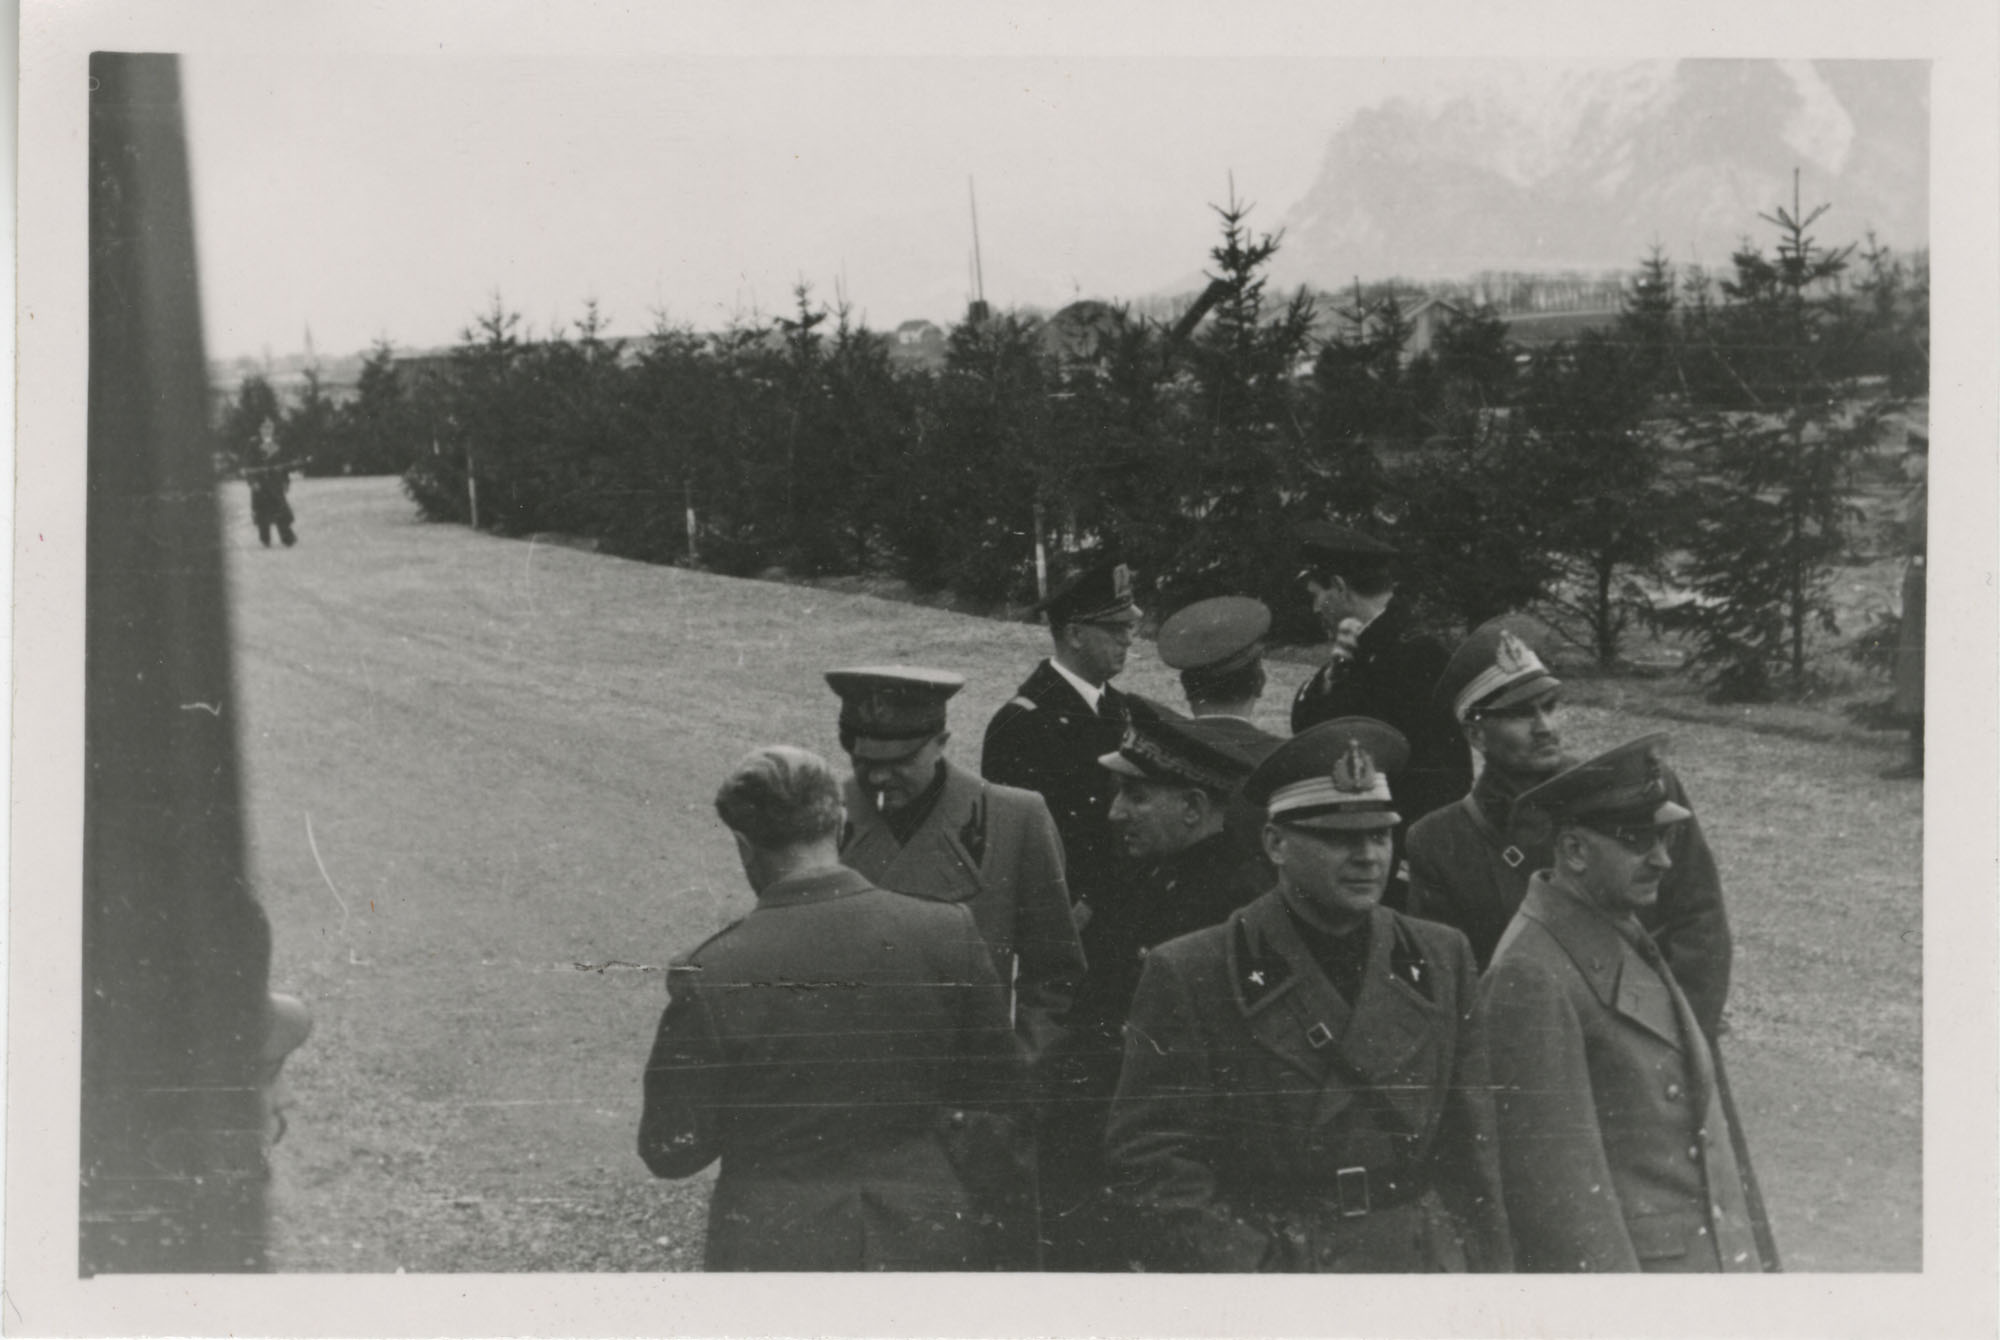 Mario Pansa greeting military personnel, Photograph 13